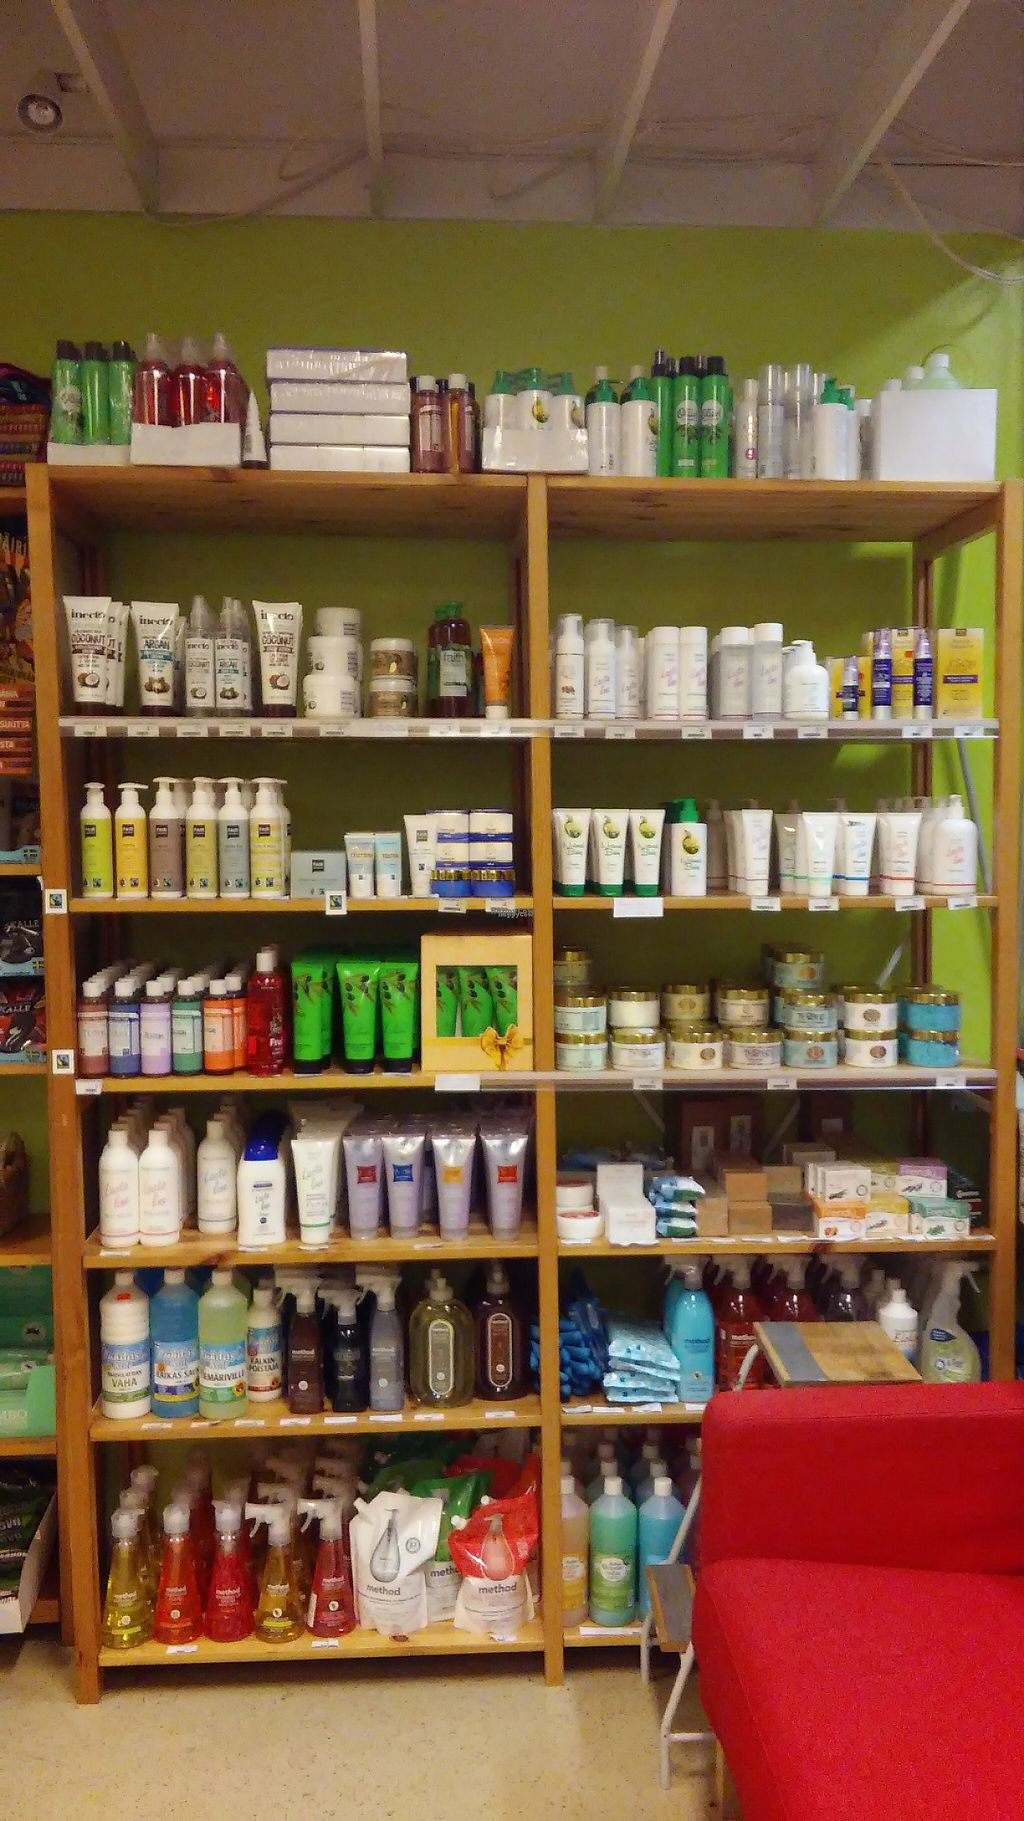 "Photo of Heluna Shop  by <a href=""/members/profile/Heluna"">Heluna</a> <br/>Vegan cosmetics, toiletries and household products are sold in Heluna Shop <br/> December 2, 2016  - <a href='/contact/abuse/image/34648/196552'>Report</a>"